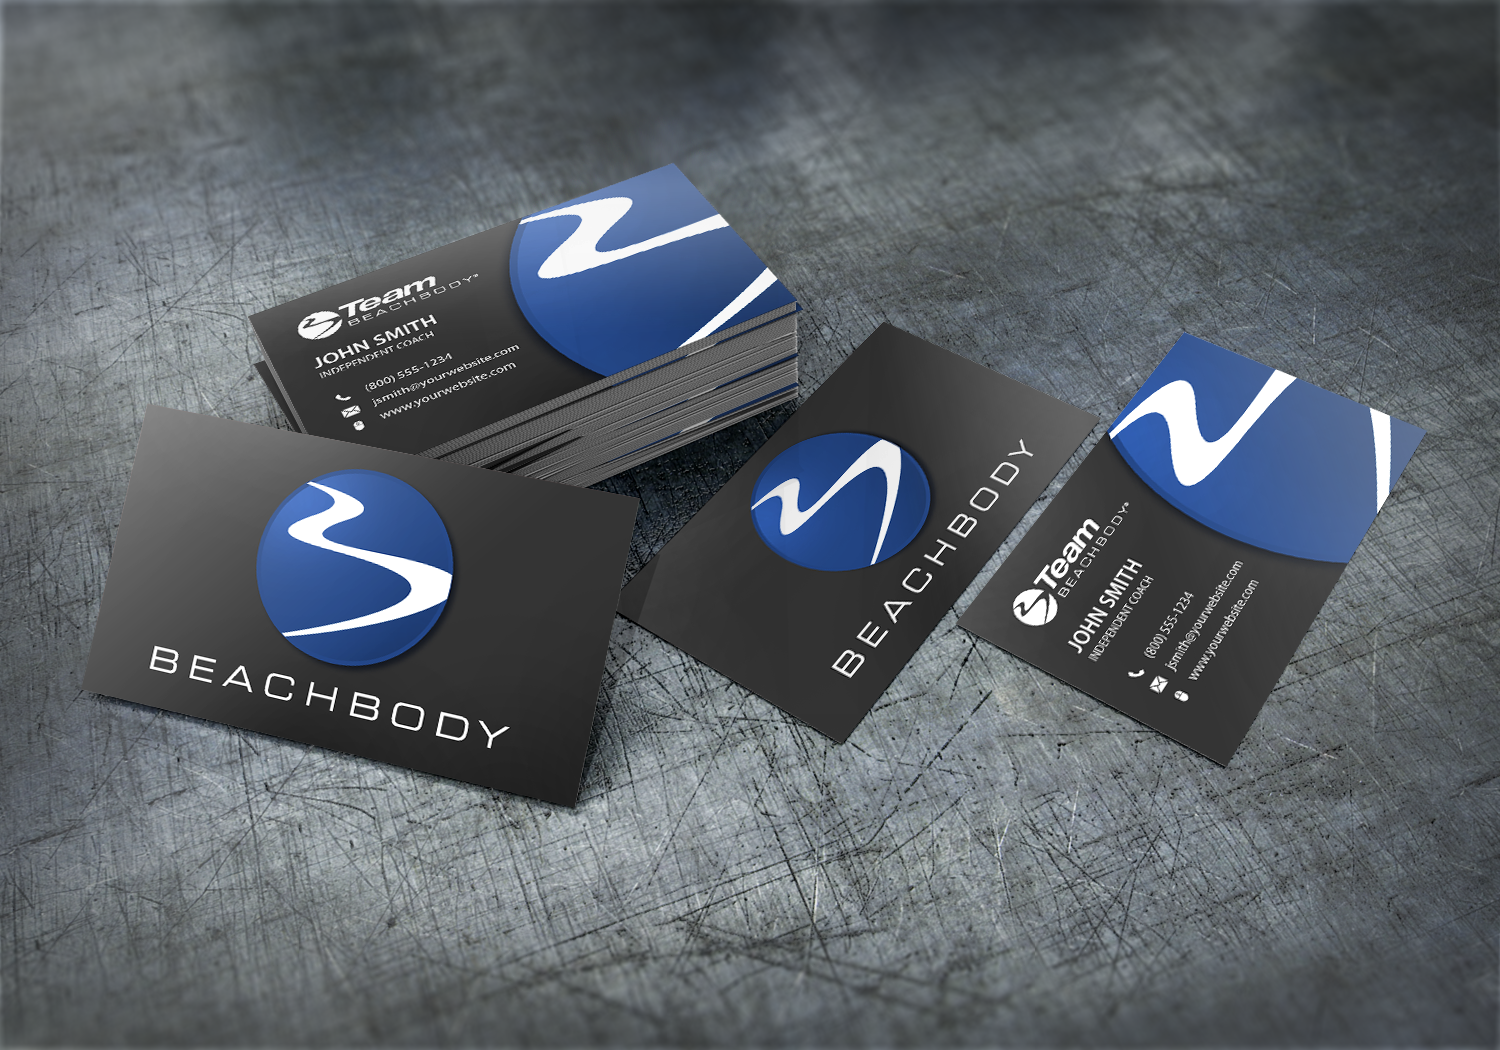 Beachbody Agents Can Create Their Own New Business Cards With Our